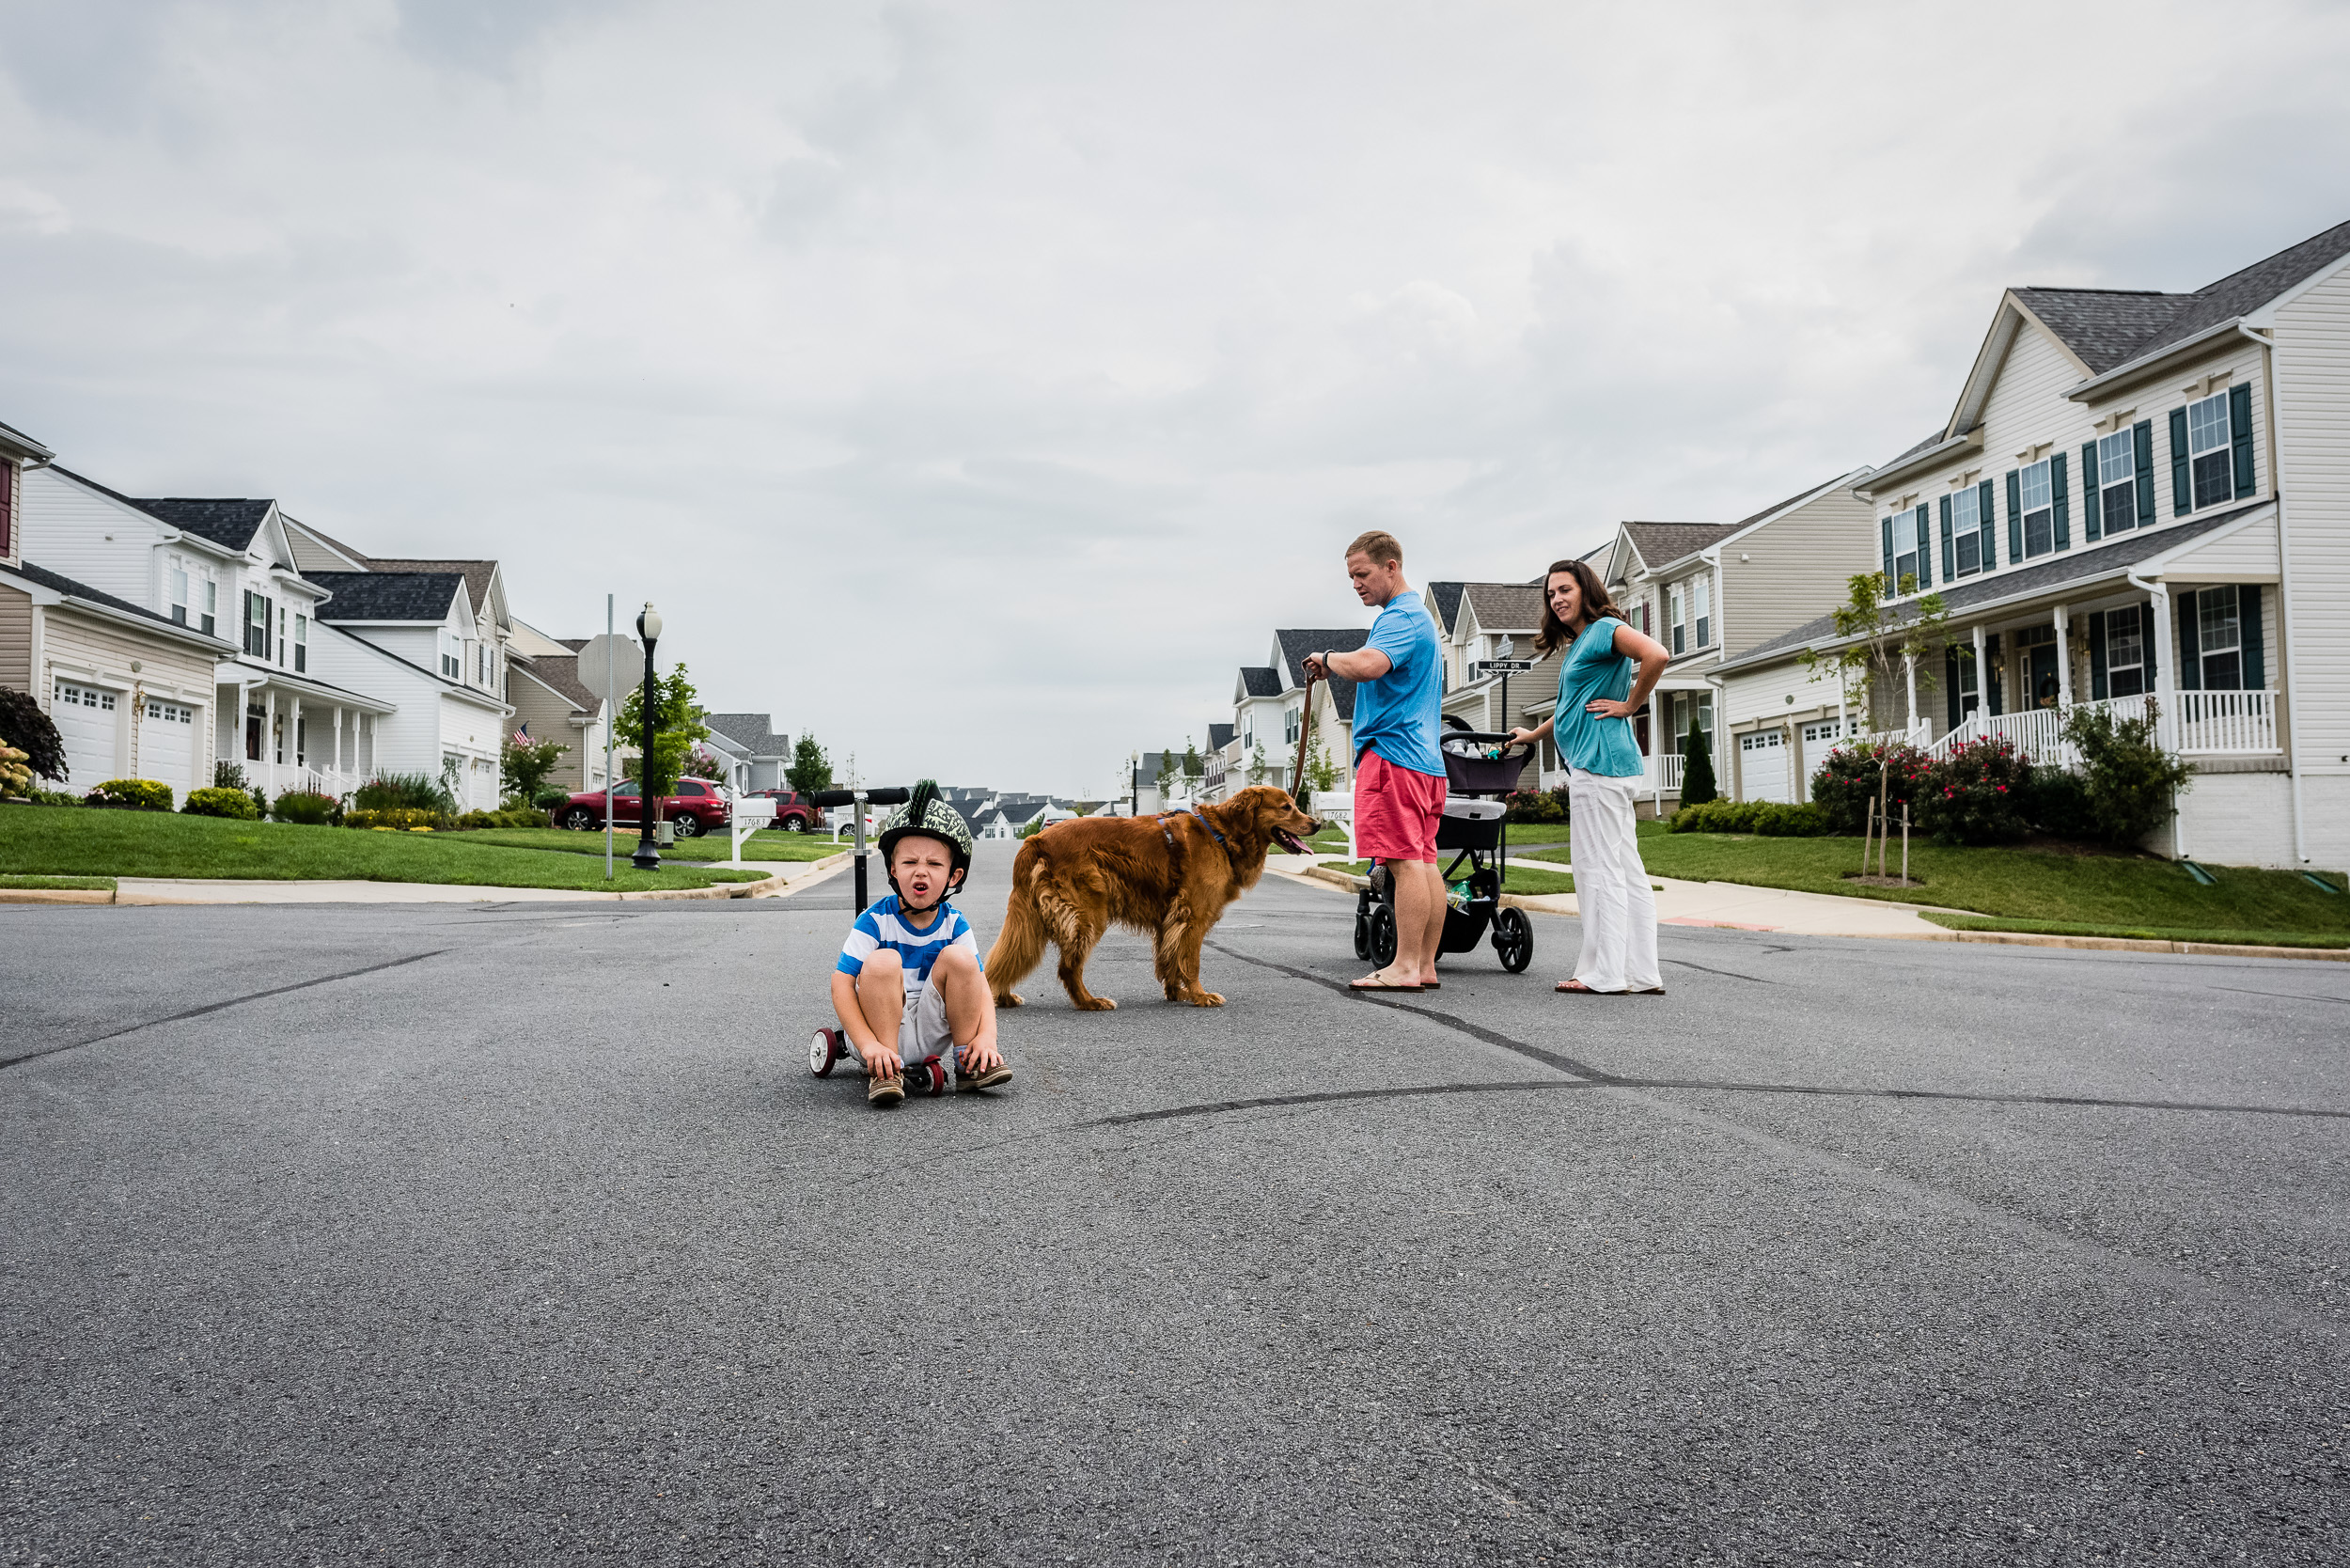 Parents waiting for boy Boy sitting in road on scooter by Northern Virginia Family Photographer Nicole Sanchez